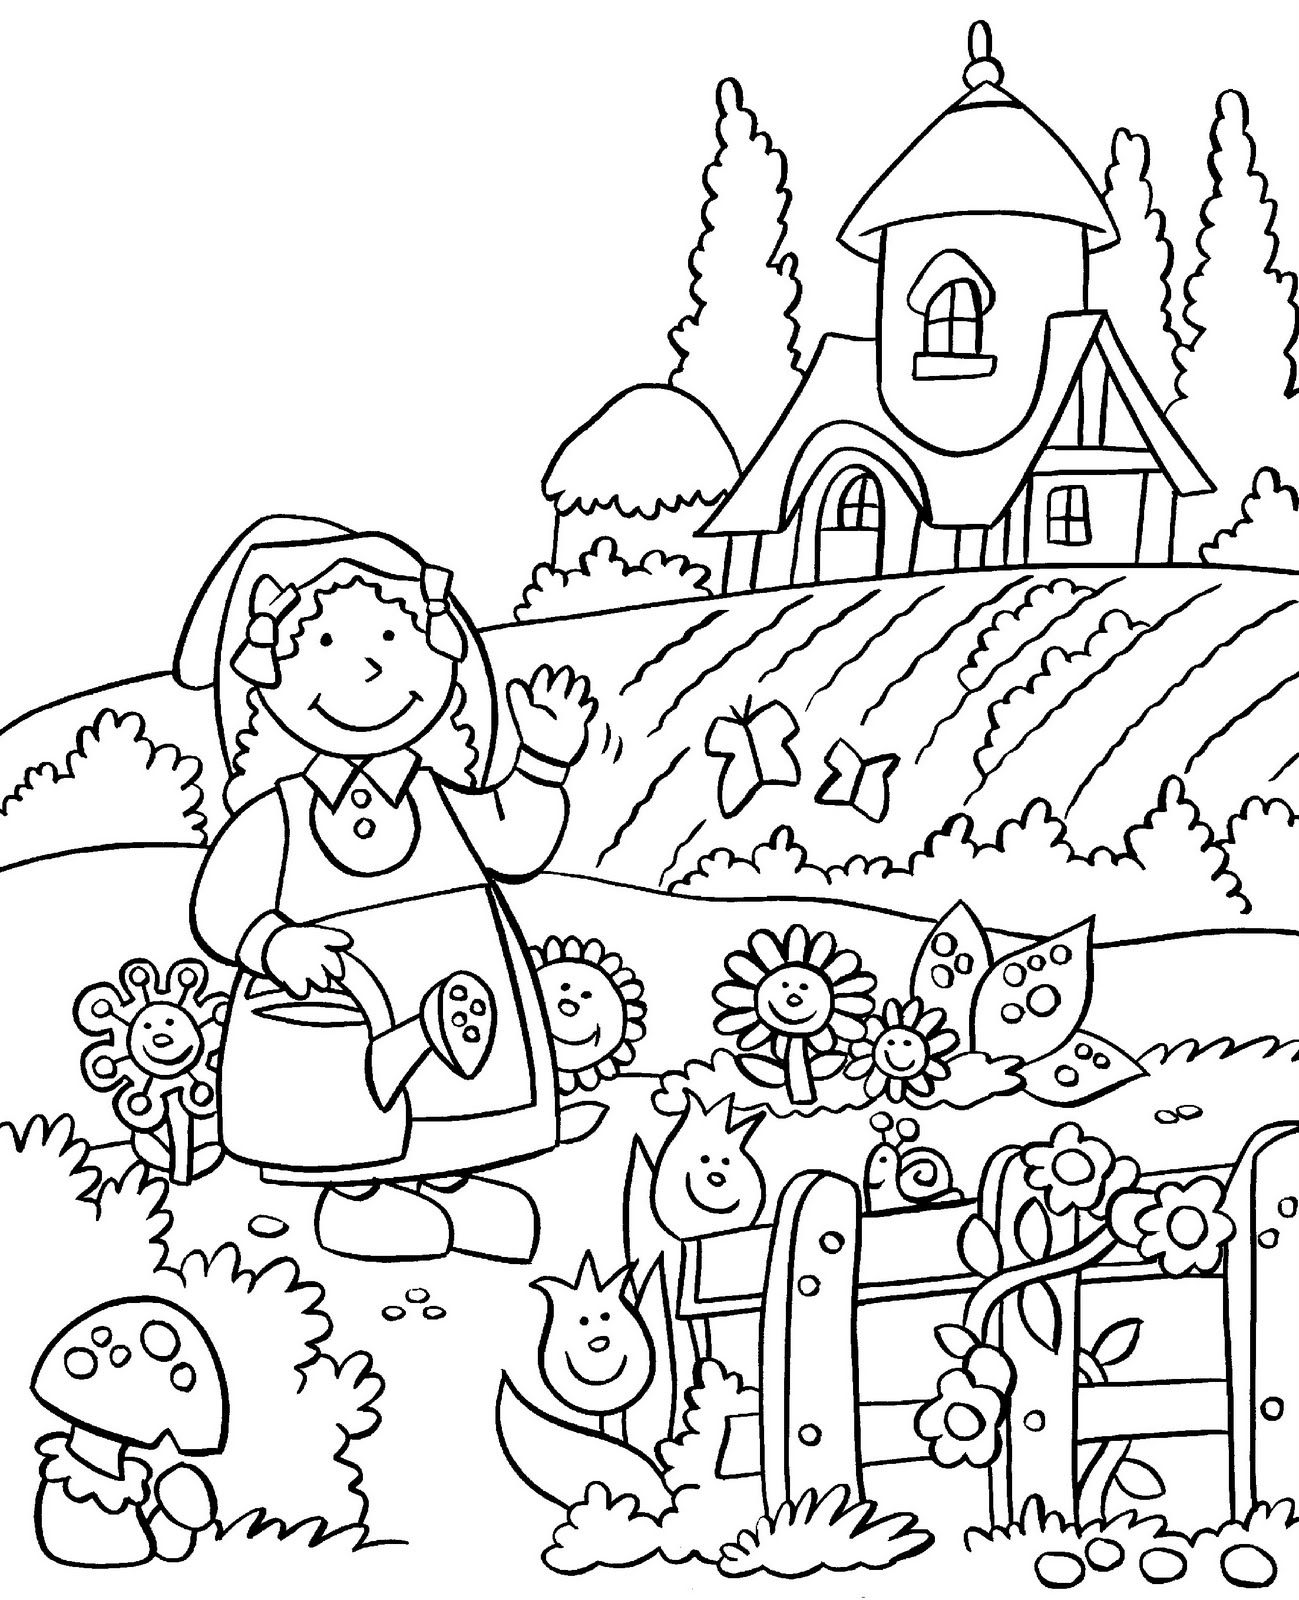 This is Country coloring pages templates, photo, images